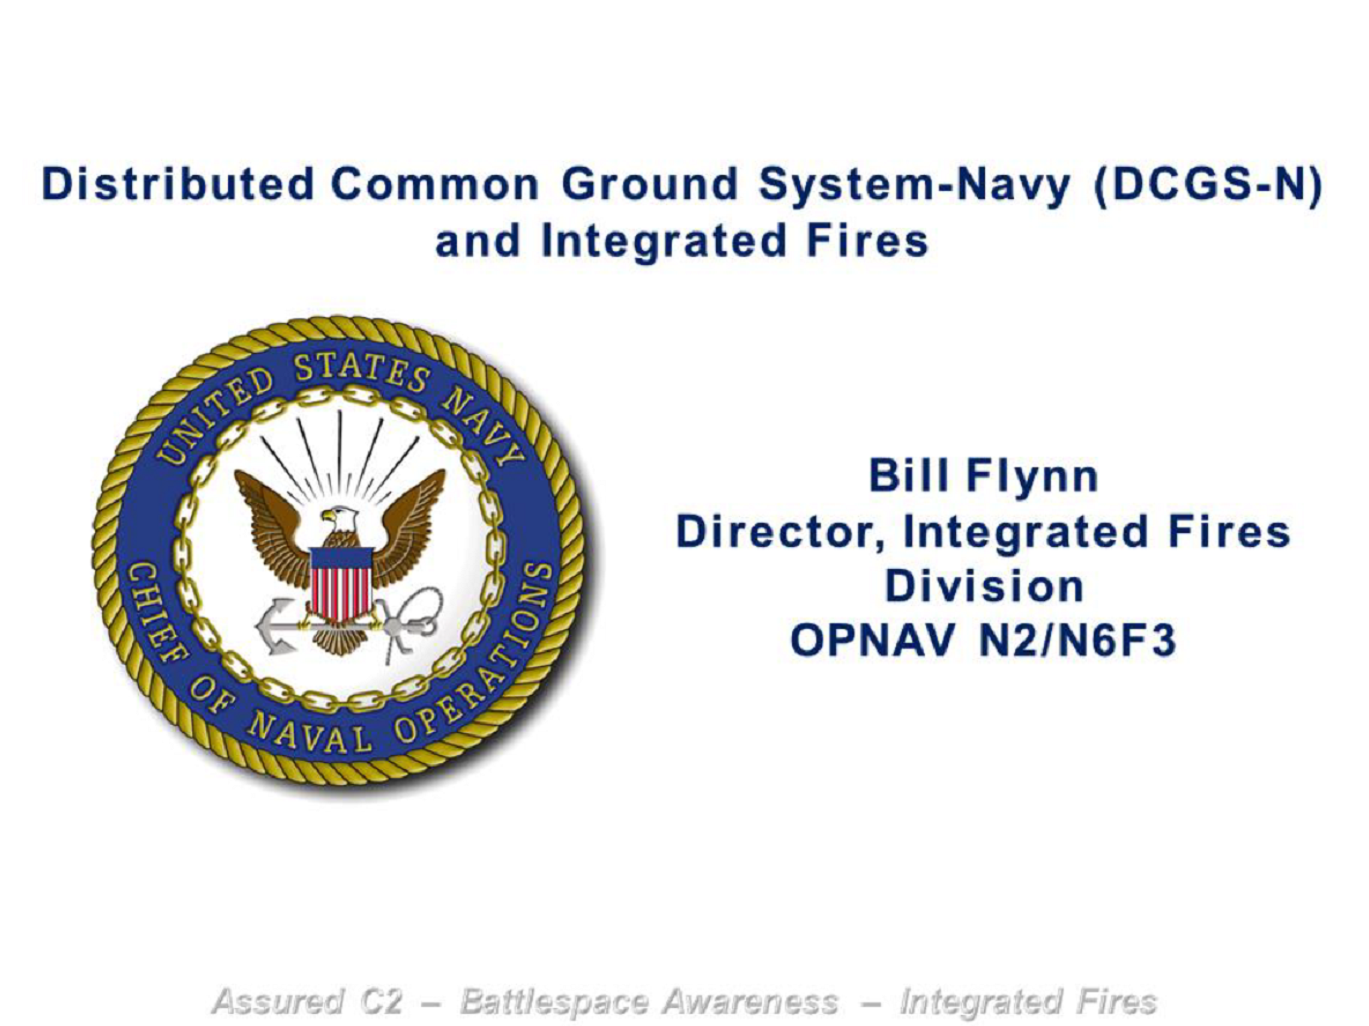 Navy's Intelligence Perspective on Addressing DCGS Updates to Combat Security Threats